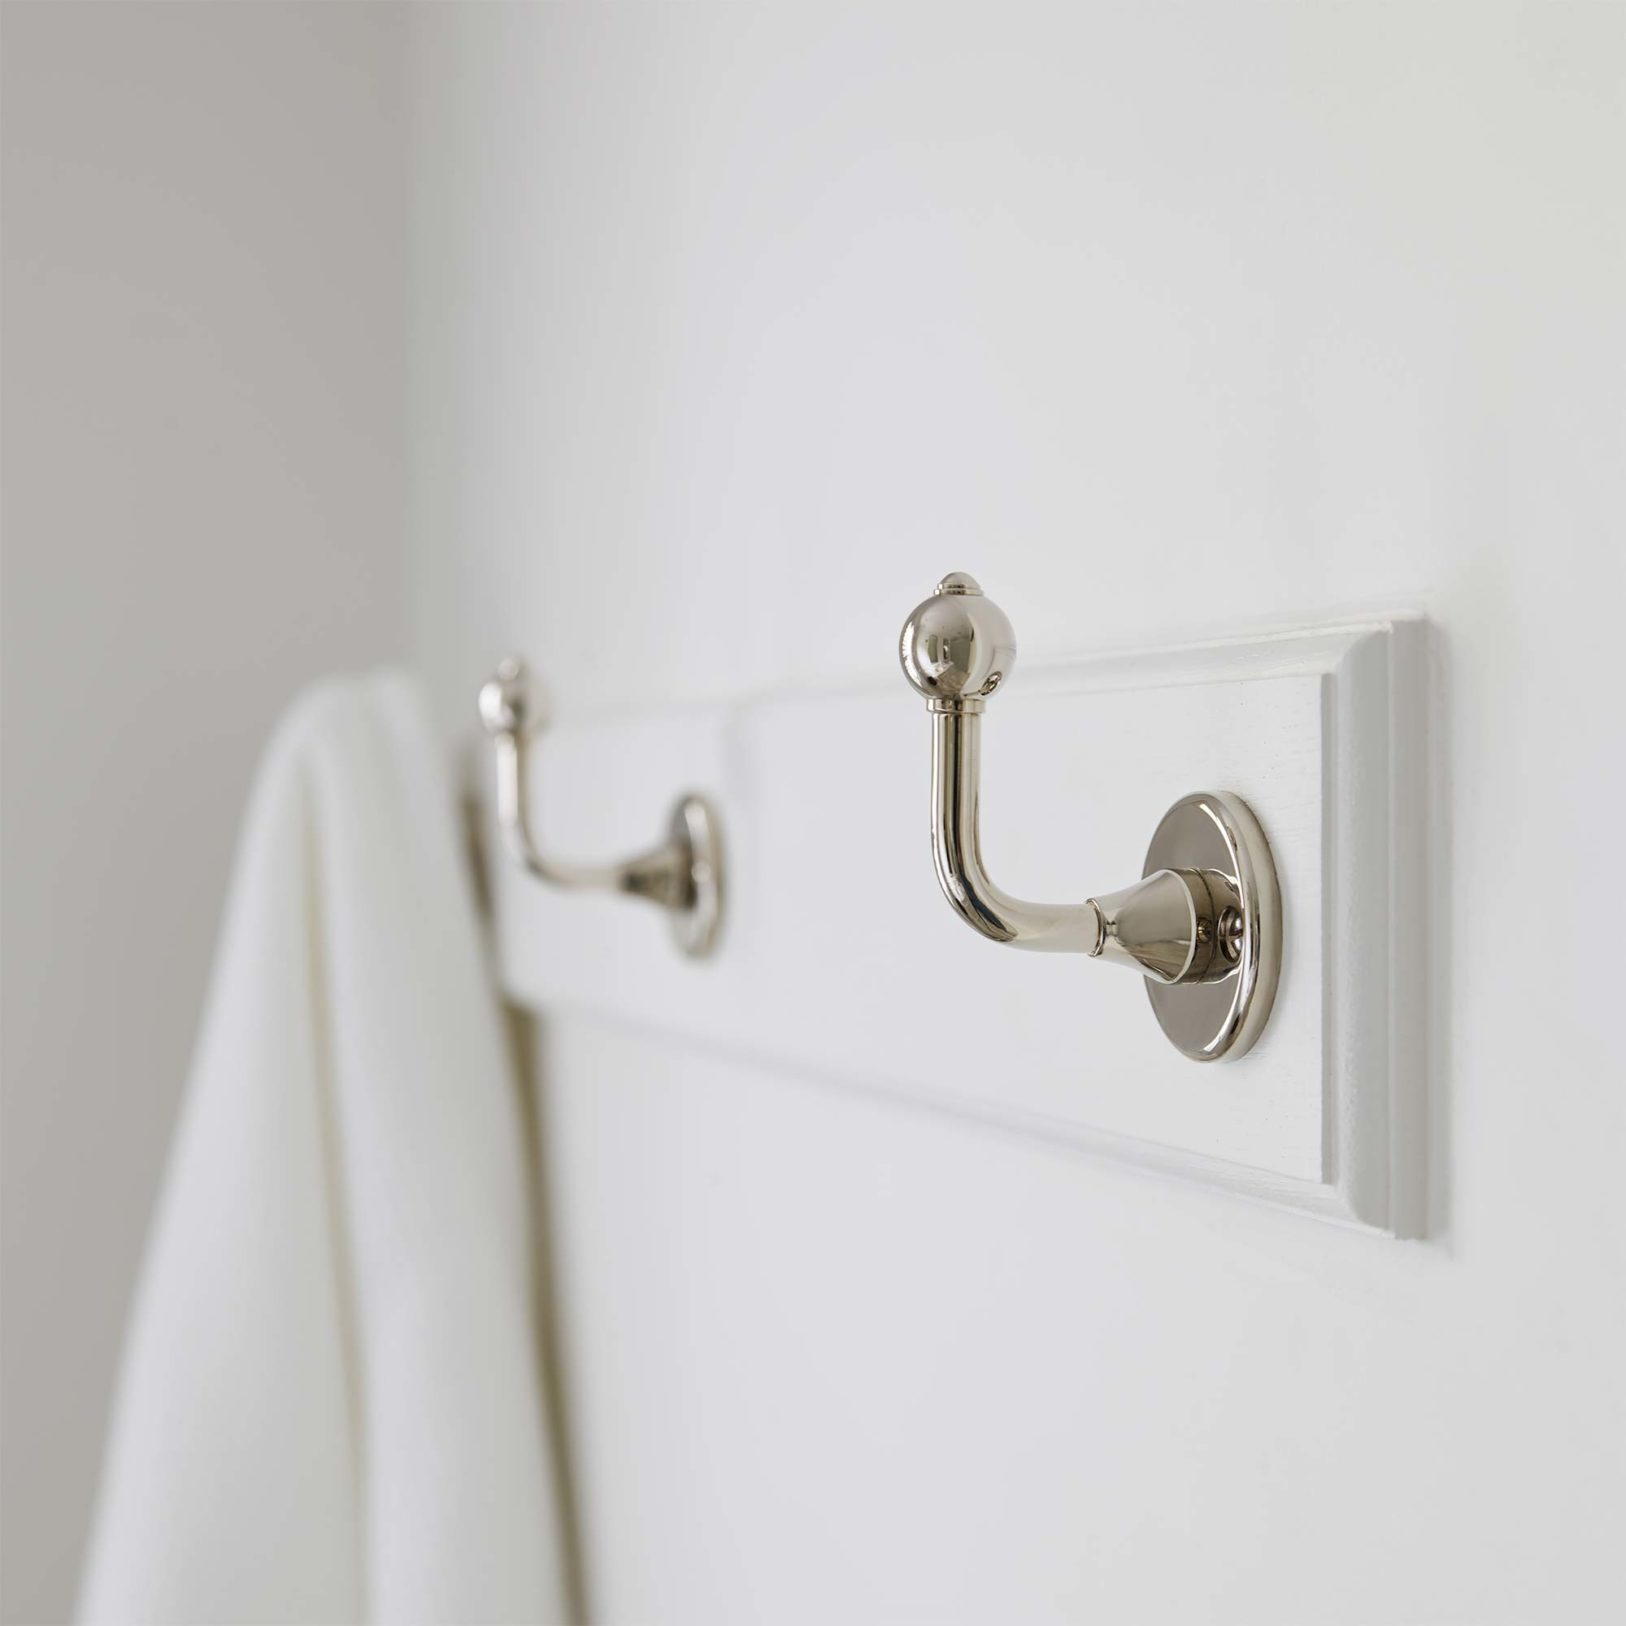 Luxury Bathroom Robe Hook Drummonds